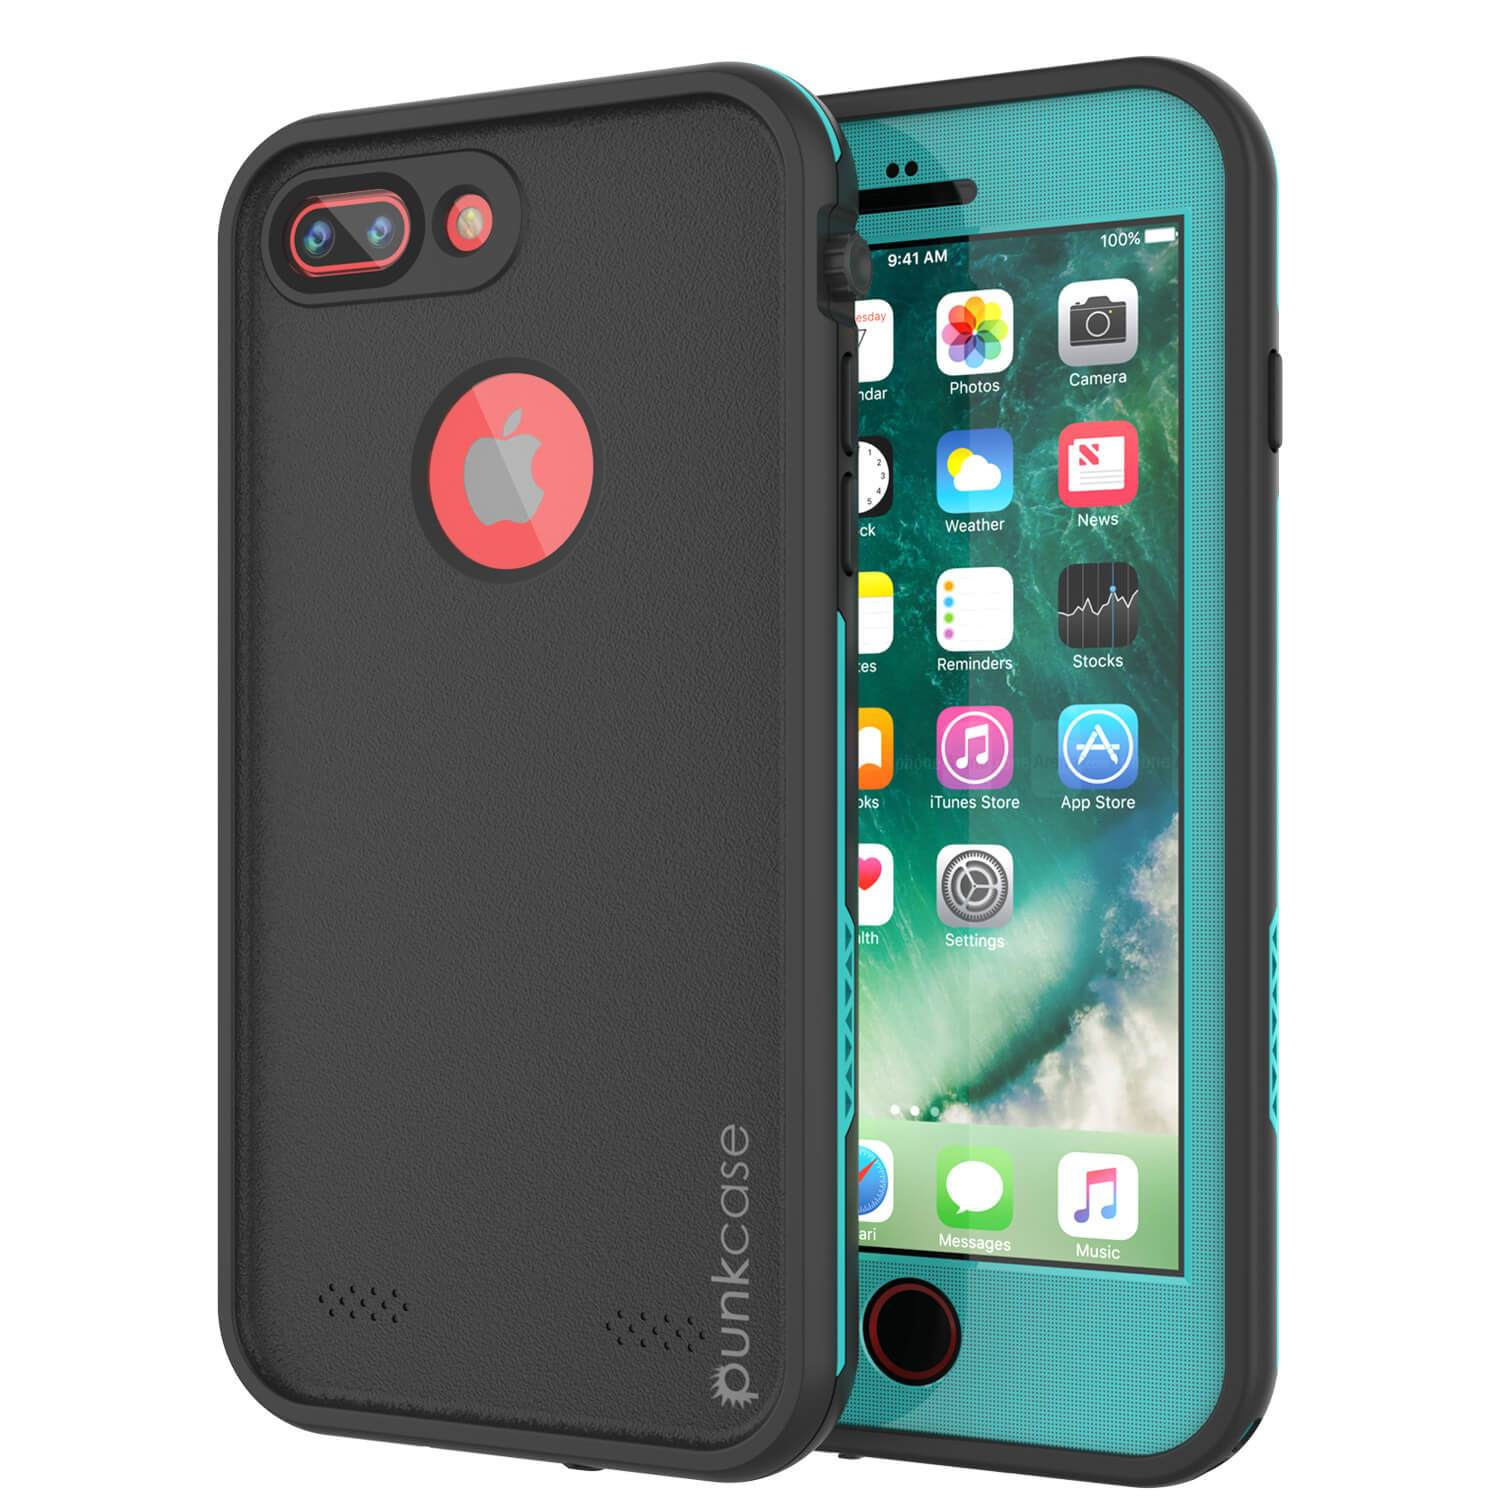 iPhone 7+ Plus Waterproof Case, Punkcase SpikeStar Teal Series | Thin Fit 6.6ft Underwater IP68